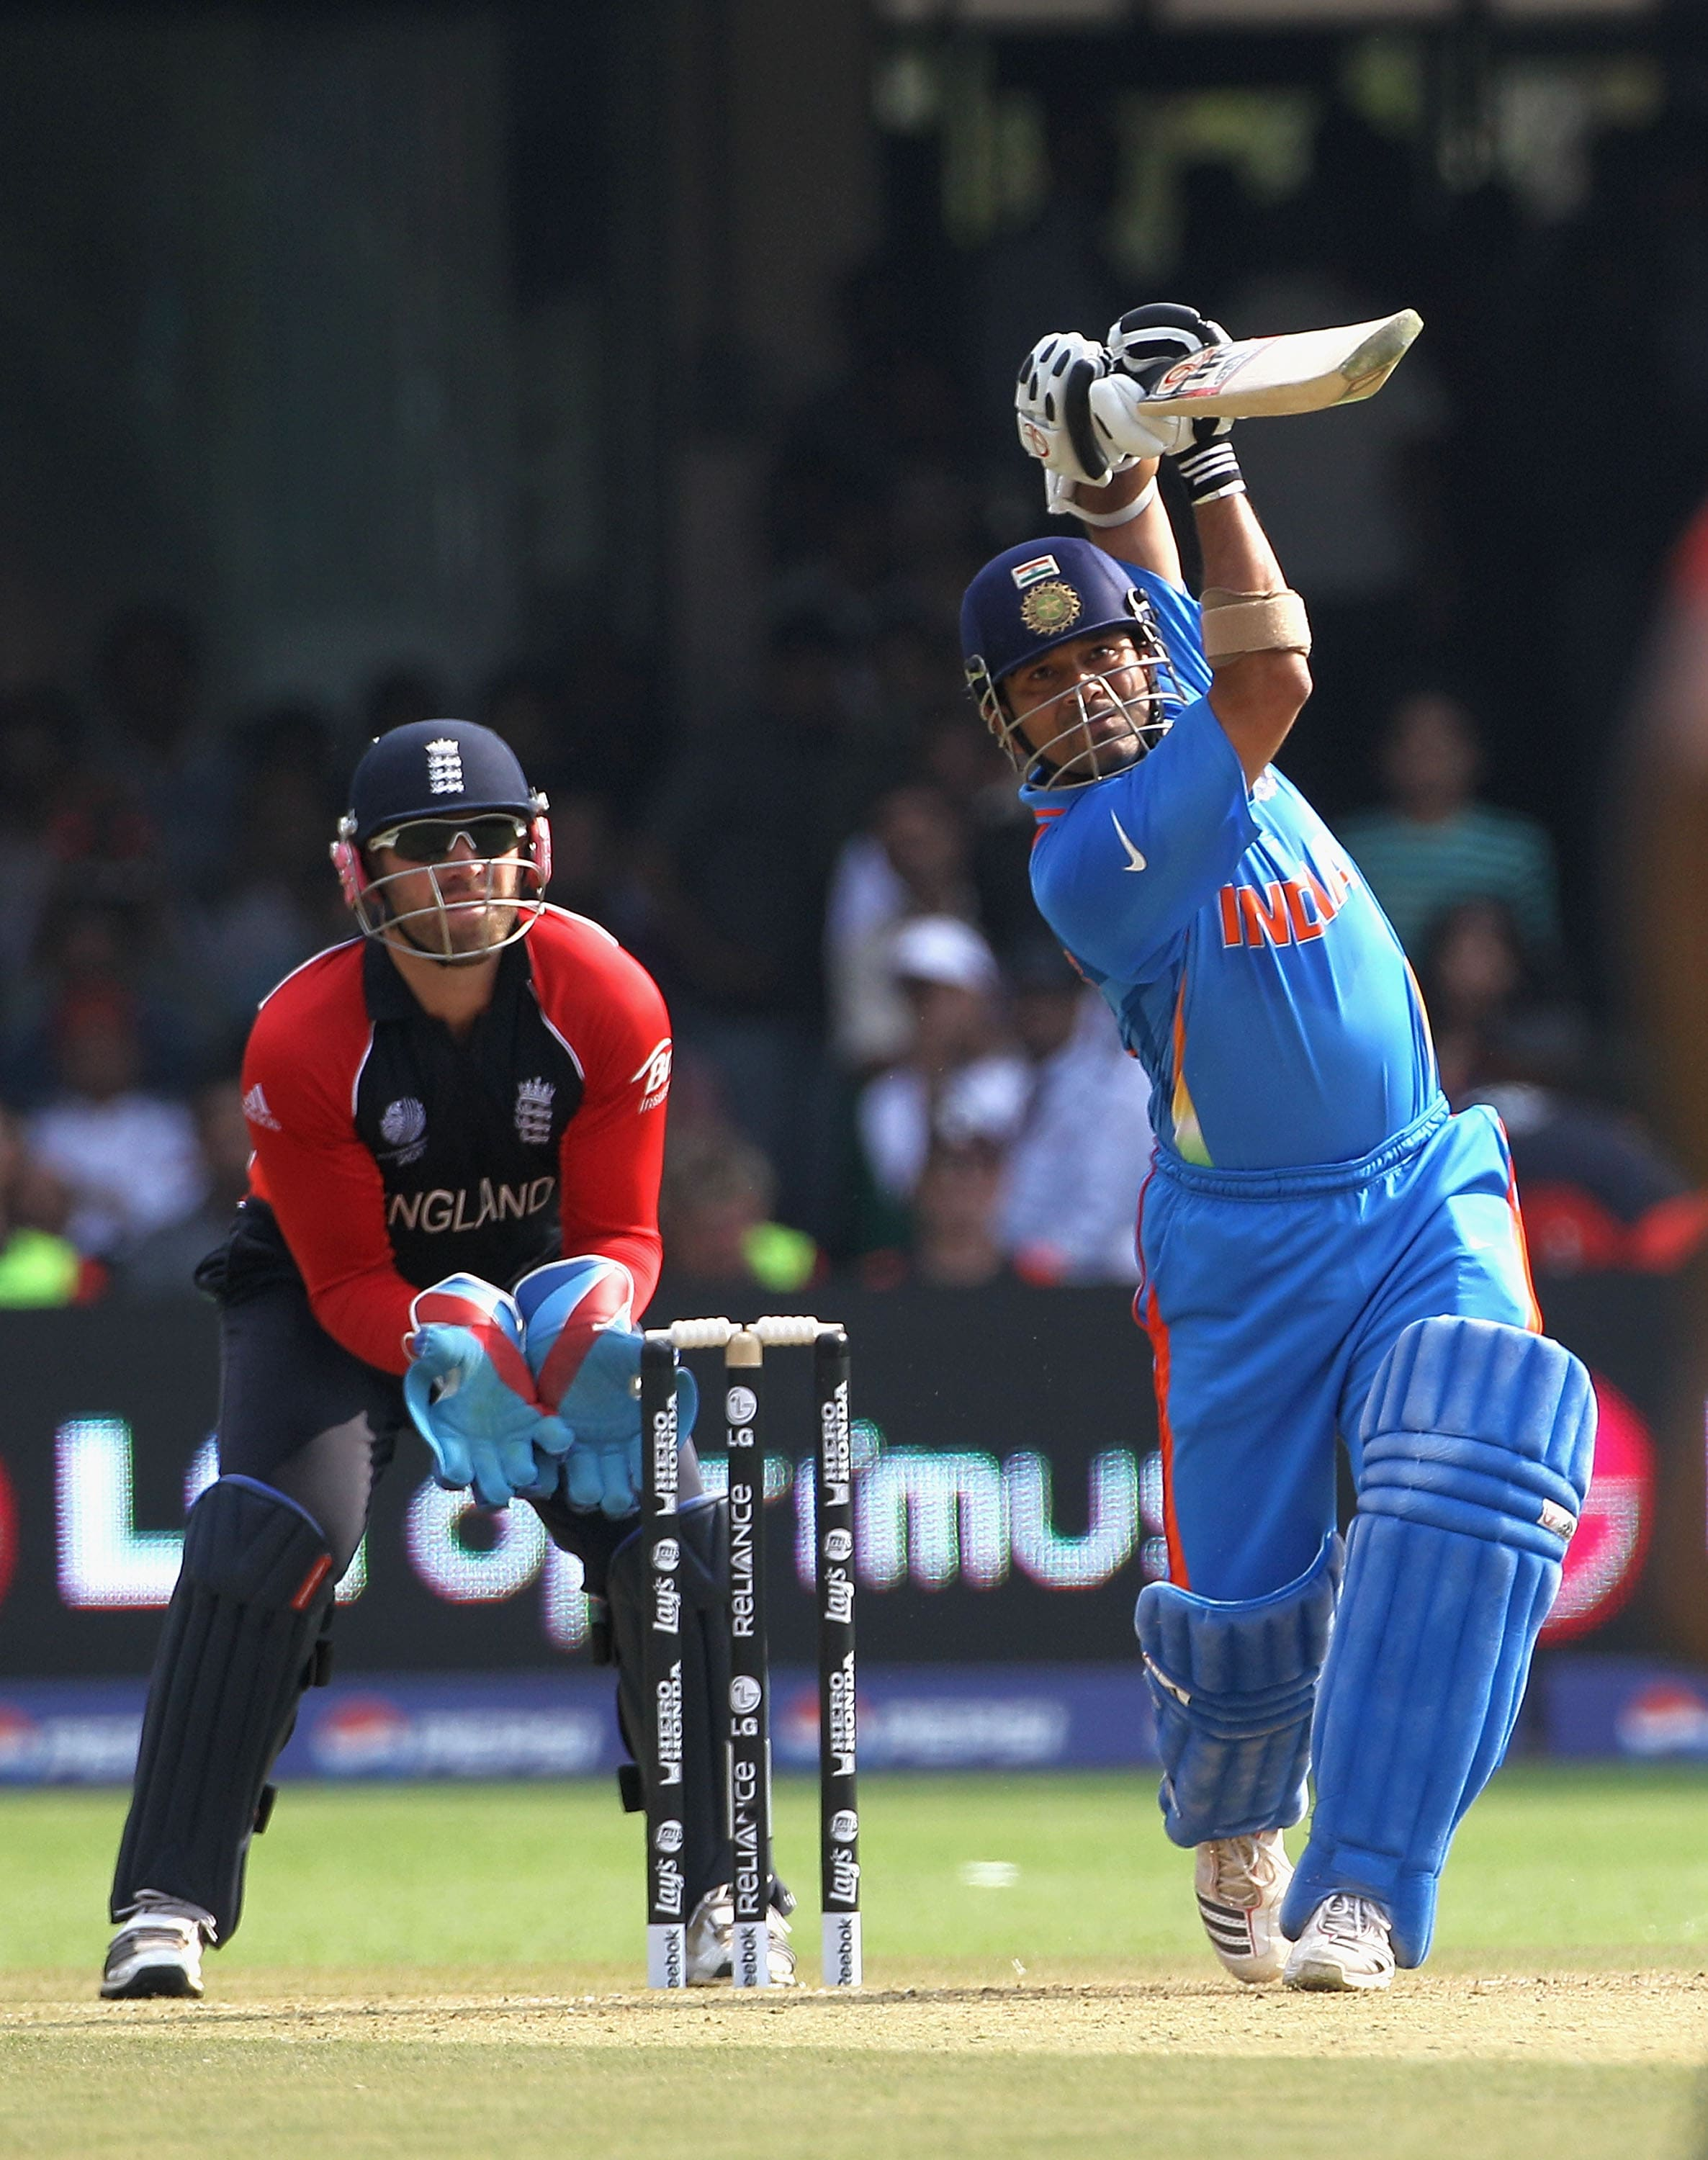 <b>Year 2011, 98th Century:</b> After failing to score in the World Cup opening match against Bangladesh, Sachin Tendulkar brought up his 47th ODI hundred in style against England in Bangalore. He hit four sixes and eight fours in his 103-ball century. He made 120 off 115 balls before England pacer James Anderson dismissed him.